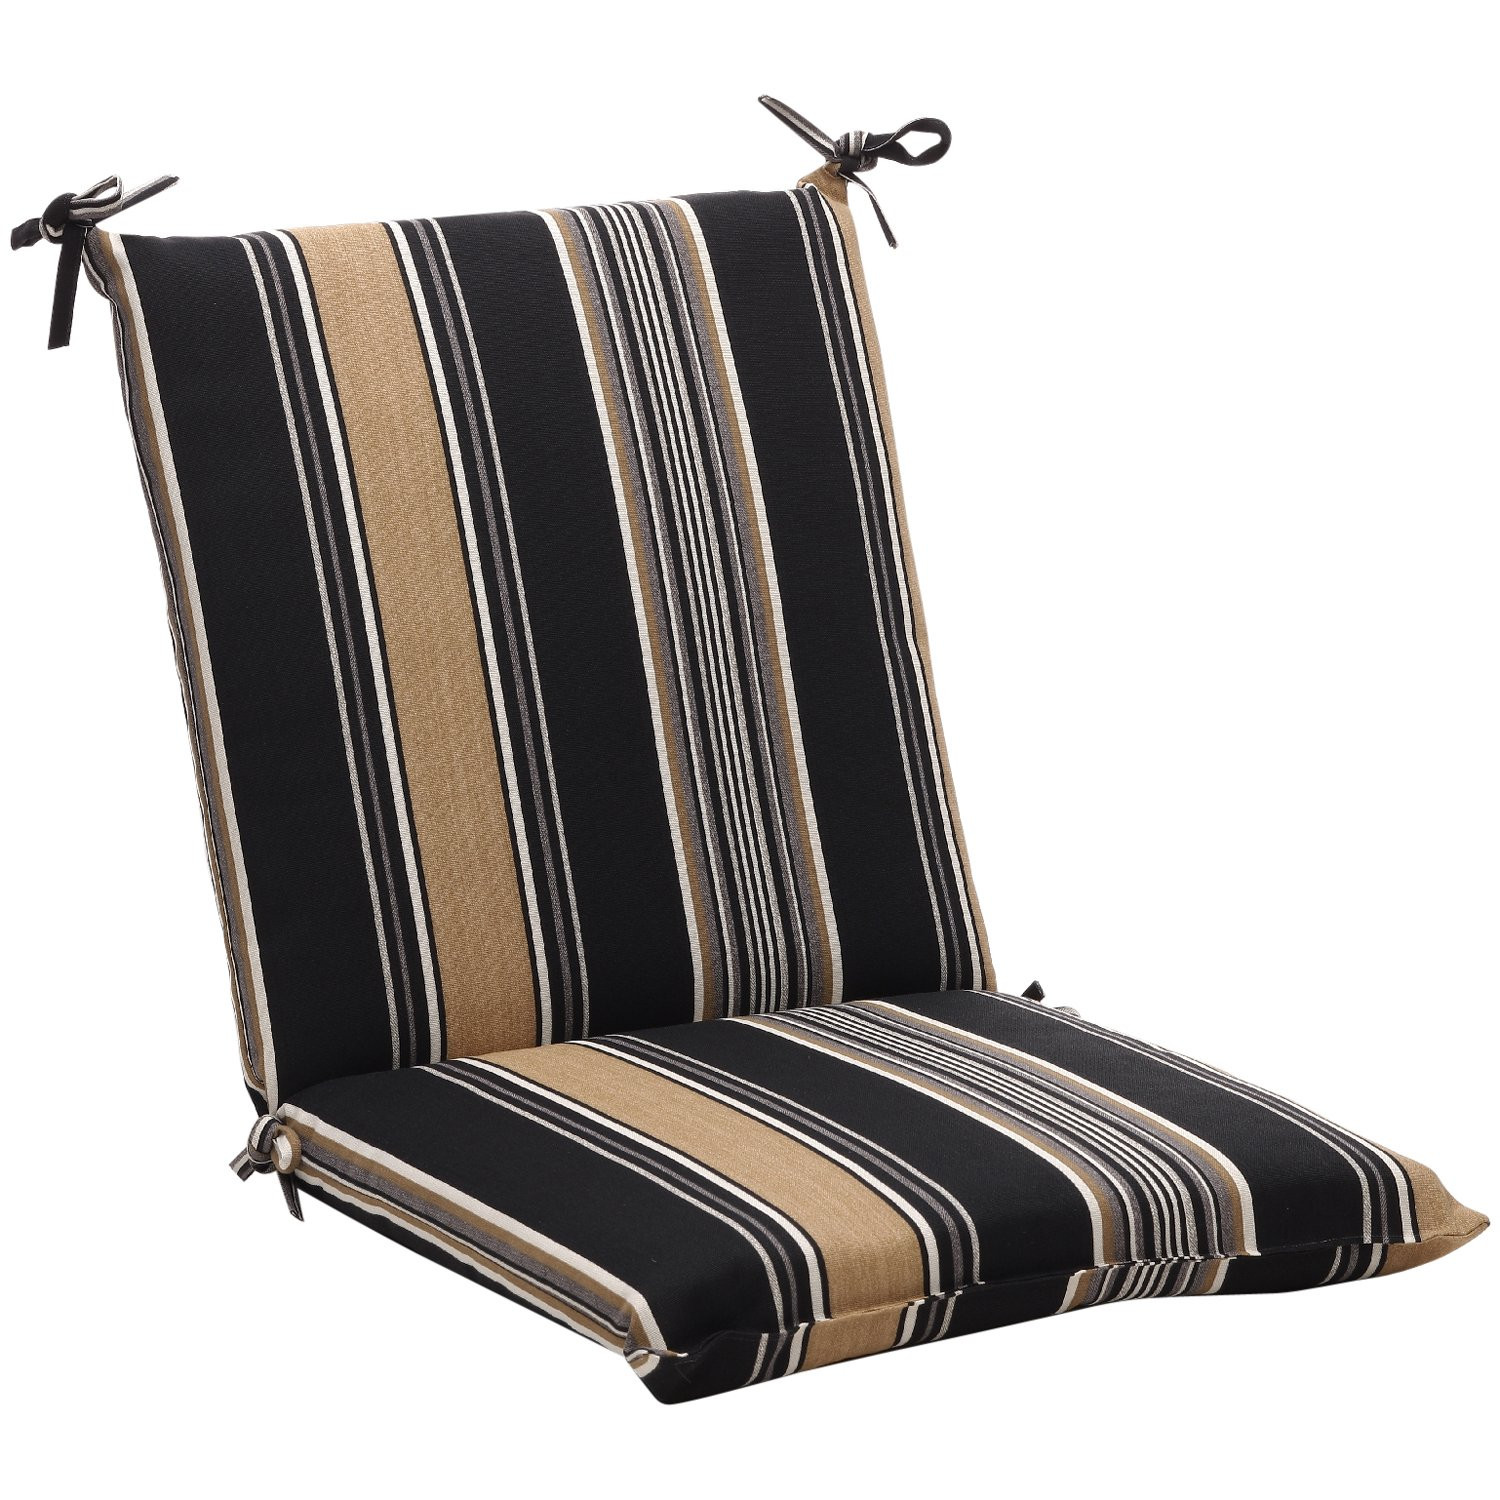 Best ideas about Outdoor Patio Chair Cushions . Save or Pin Squared Black Tan Stripe Outdoor Chair Cushion Free Now.